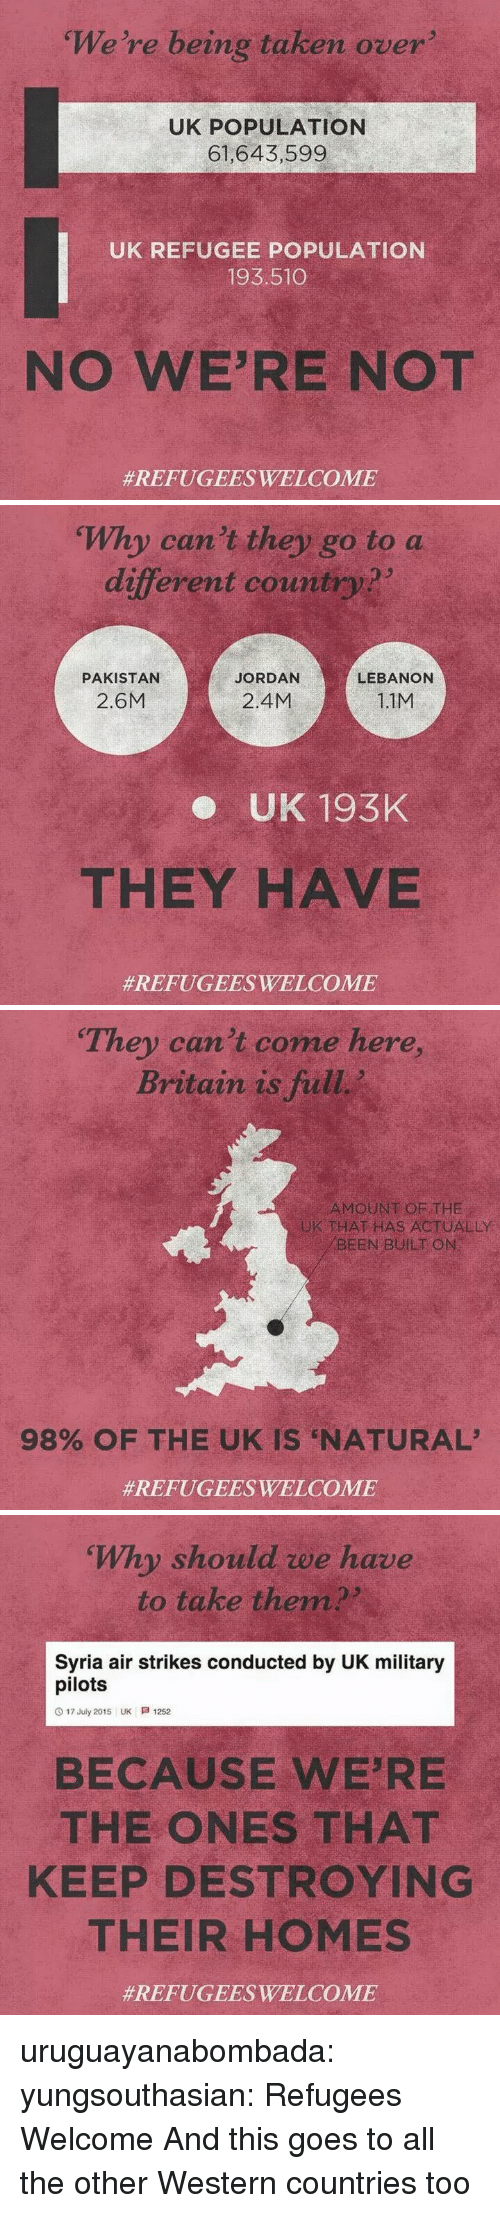 Pilots: We're being taken over  UK POPULATION  61,643,599  UK REFUGEE POPULATION  193.510  NO WE'RE NOT  #REFUGEESWELCOME   Why can't they go to a  different country?  PAKISTAN  JORDAN  LEBANON  2.6M  2.4M  1.1M  e UK 193K  THEY HAVE  #REFUGEESWELCOME   They can't come here,  Britain is full  AMOUNT OF THE  THAT HAS ACTUALLY  BEENBUİLT ON  98% OF THE UK IS 'NATURAL'  #REFUGEESWELCOME   Why should we have  to take them  Syria air strikes conducted by UK military  pilots  O 17 July 2015 UK 1252  BECAUSE WE'RE  THE ONES THAT  KEEP DESTROYING  THEIR HOMES  uruguayanabombada:  yungsouthasian: Refugees Welcome  And this goes to all the other Western countries too